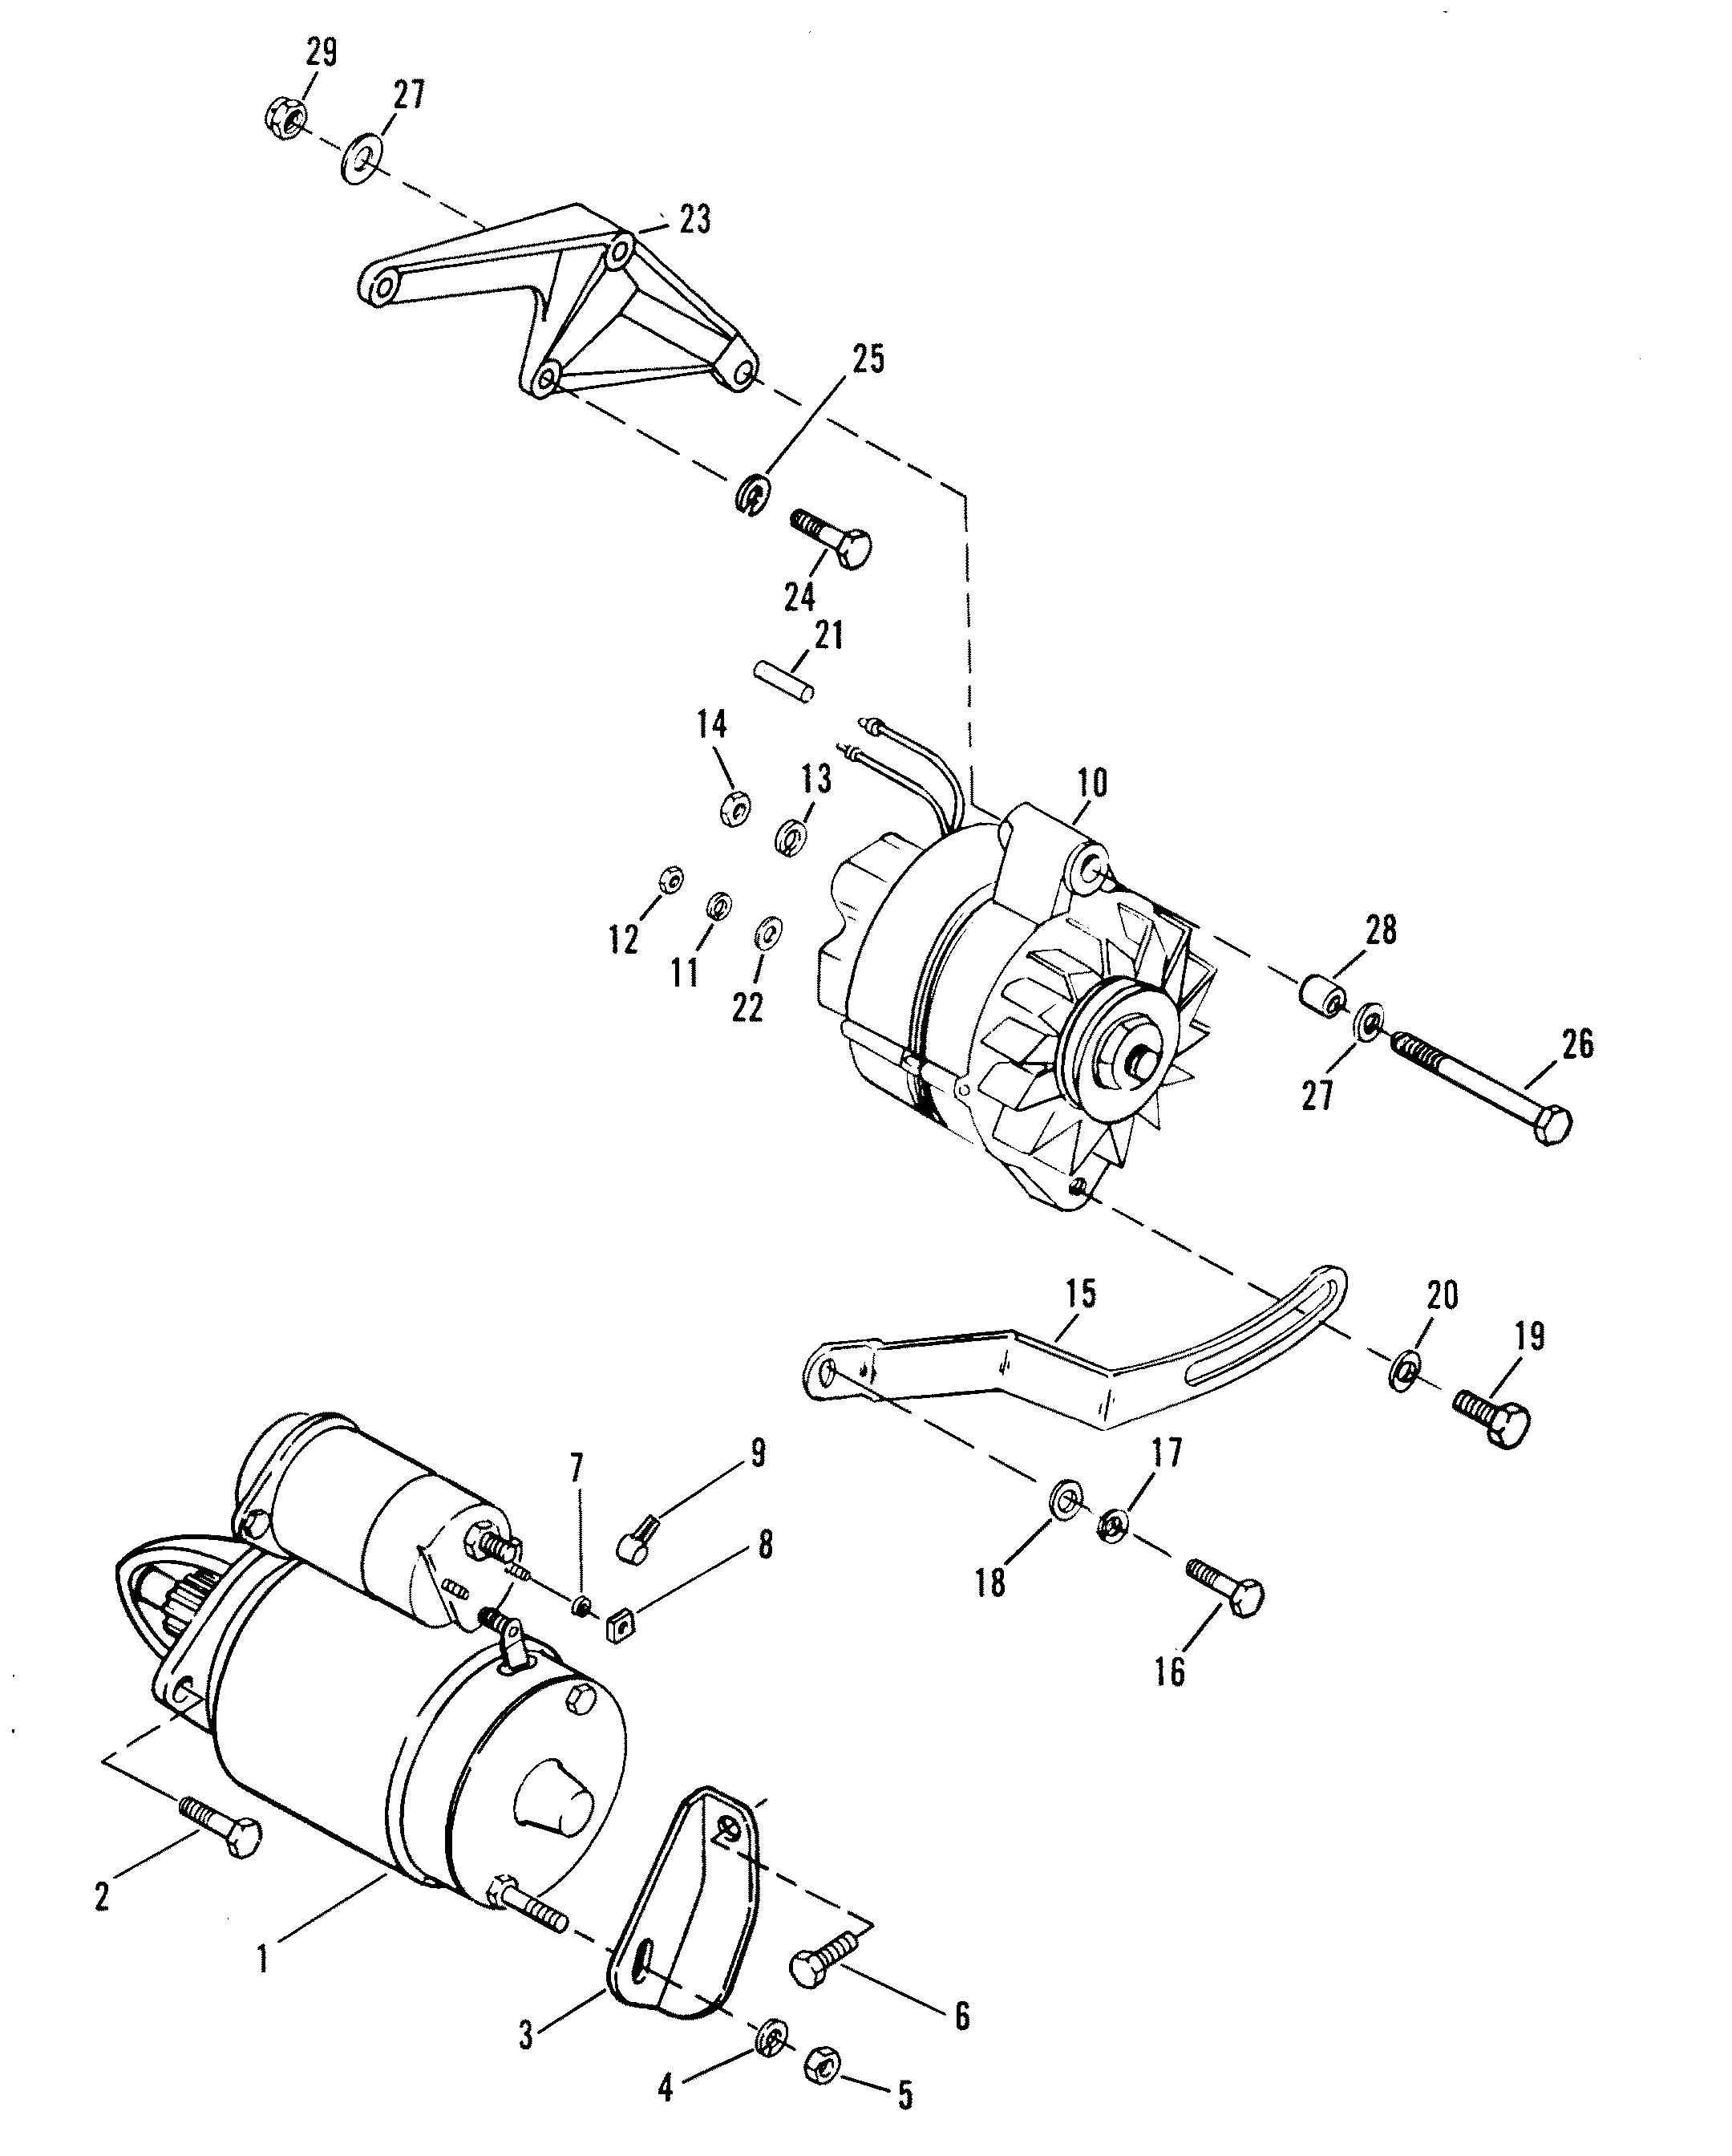 Starter And Alternator For Mercruiser 454 Magnum Bravo Engine